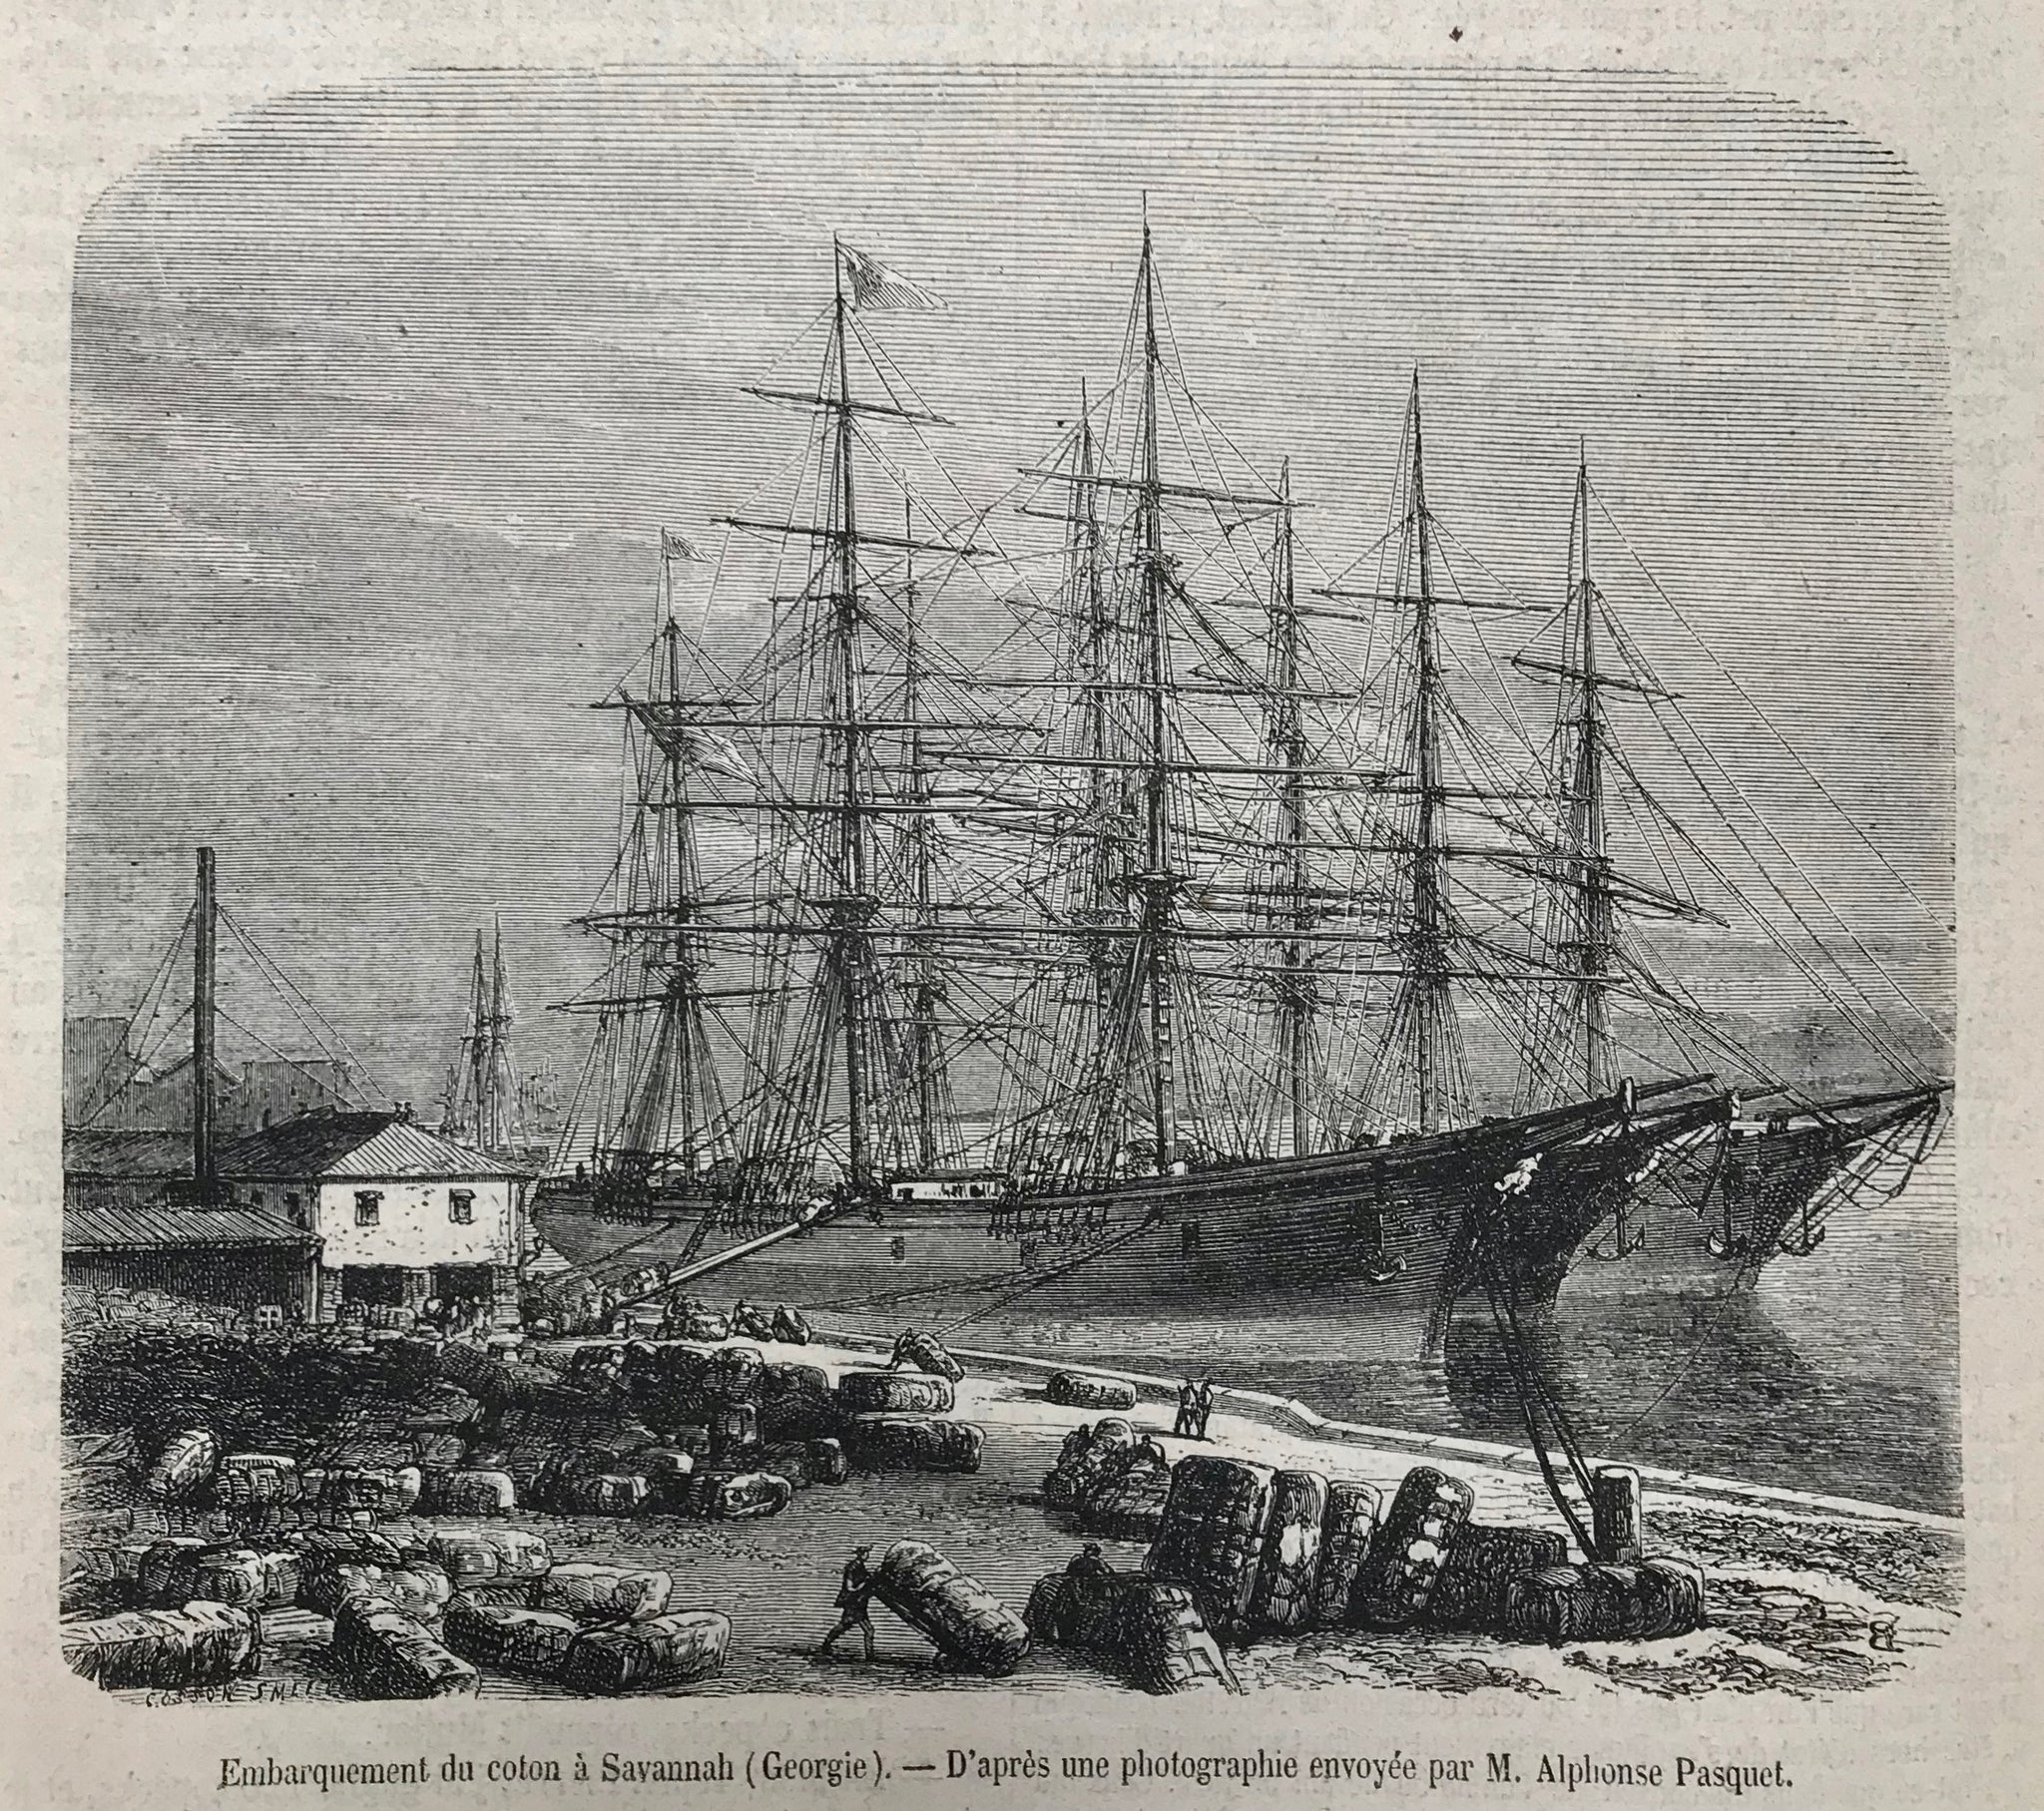 """Embarquement du coton a Savannah (Georgia)""  Wood engraving made after a photograph. Published ca 1870. Above and below the image is text about the cotton business and export. Reverse side is printed with unrelated text."